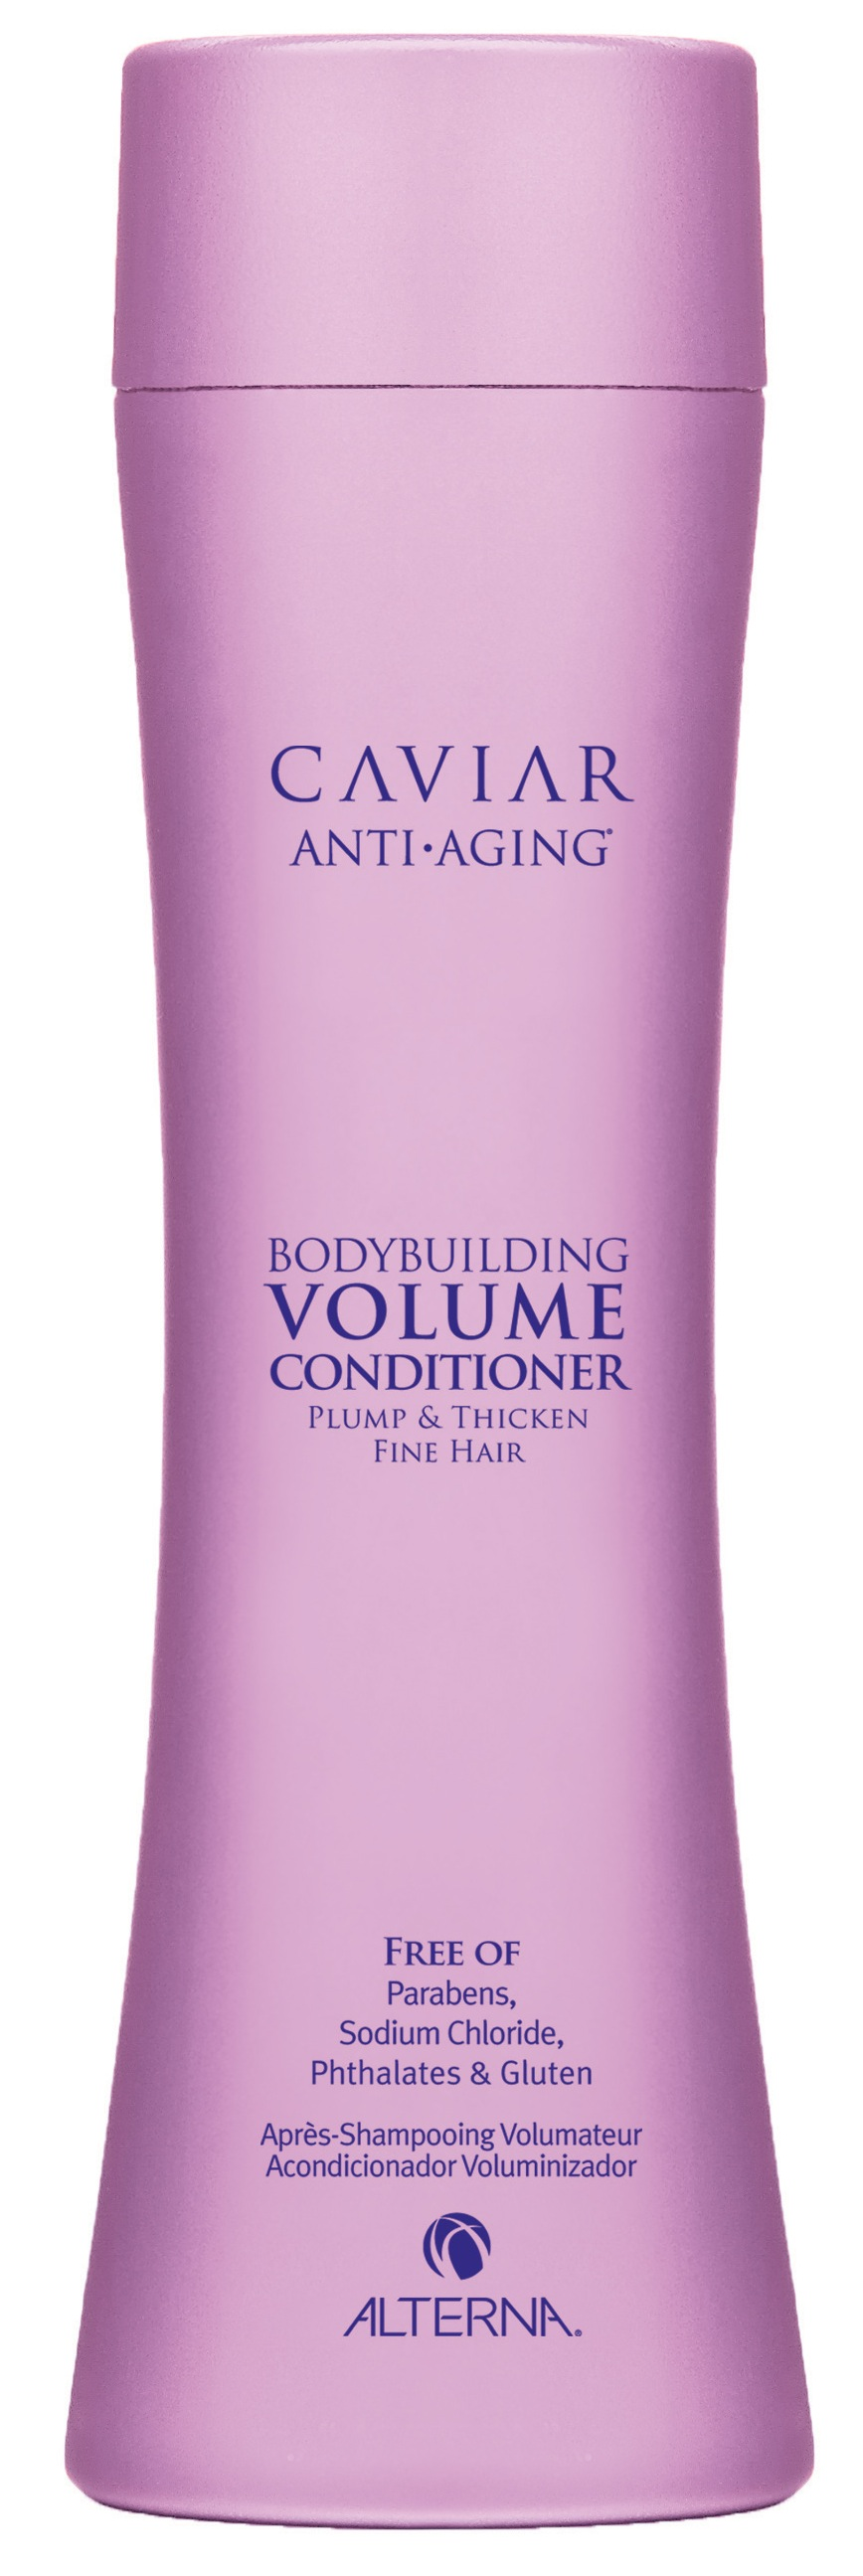 "ALTERNA Кондиционер для объема с морским шелком / Caviar Anti-aging Bodybuilding Volume Conditioner 250 мл alterna спрей ""абсолютная термозащита"" caviar anti aging perfect iron spray 122ml"